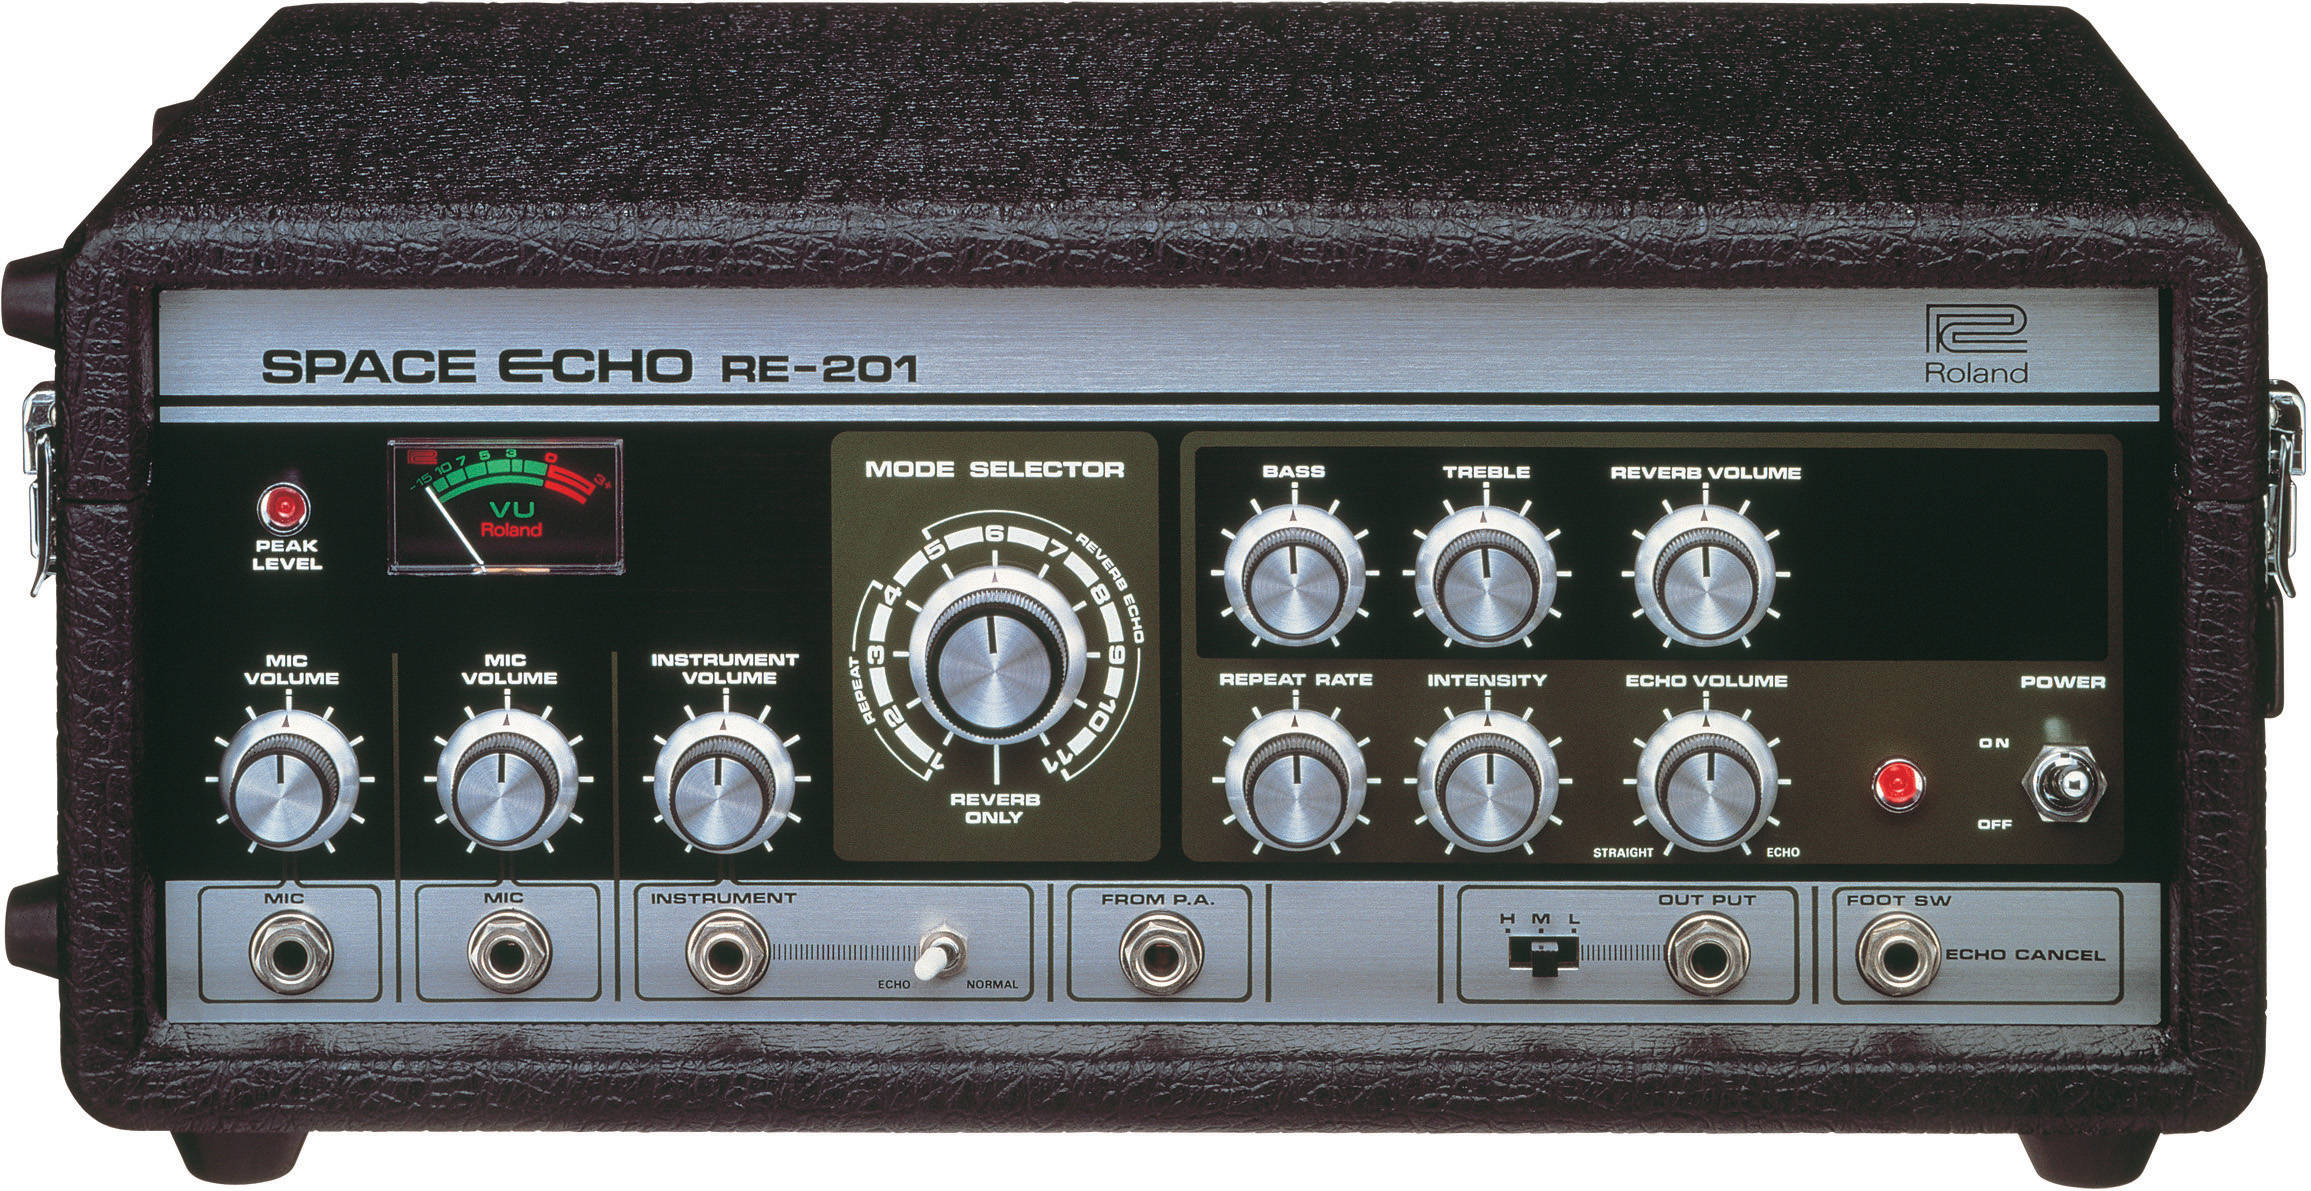 Sujet musiciens, instruments, etc. - Page 16 Roland-re-201-space-echo